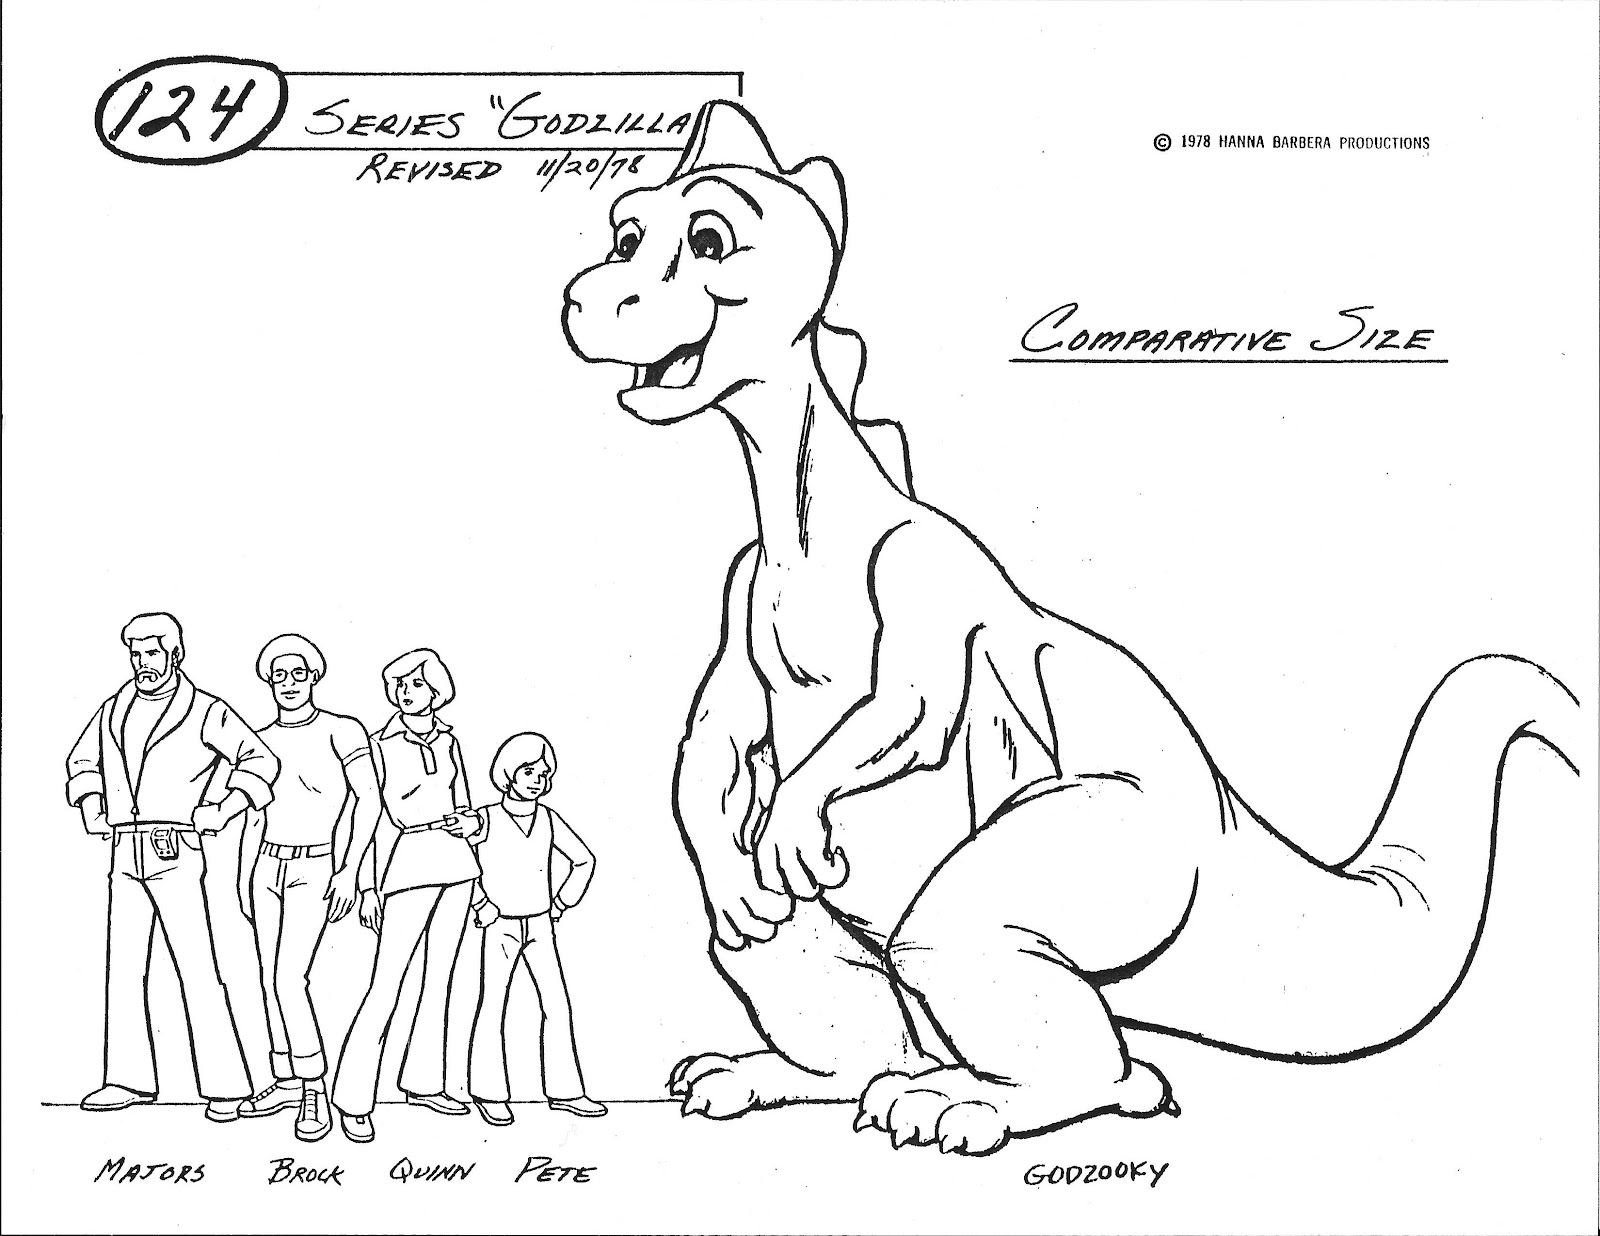 the sphinx godzilla hanna barbera model sheets 1978